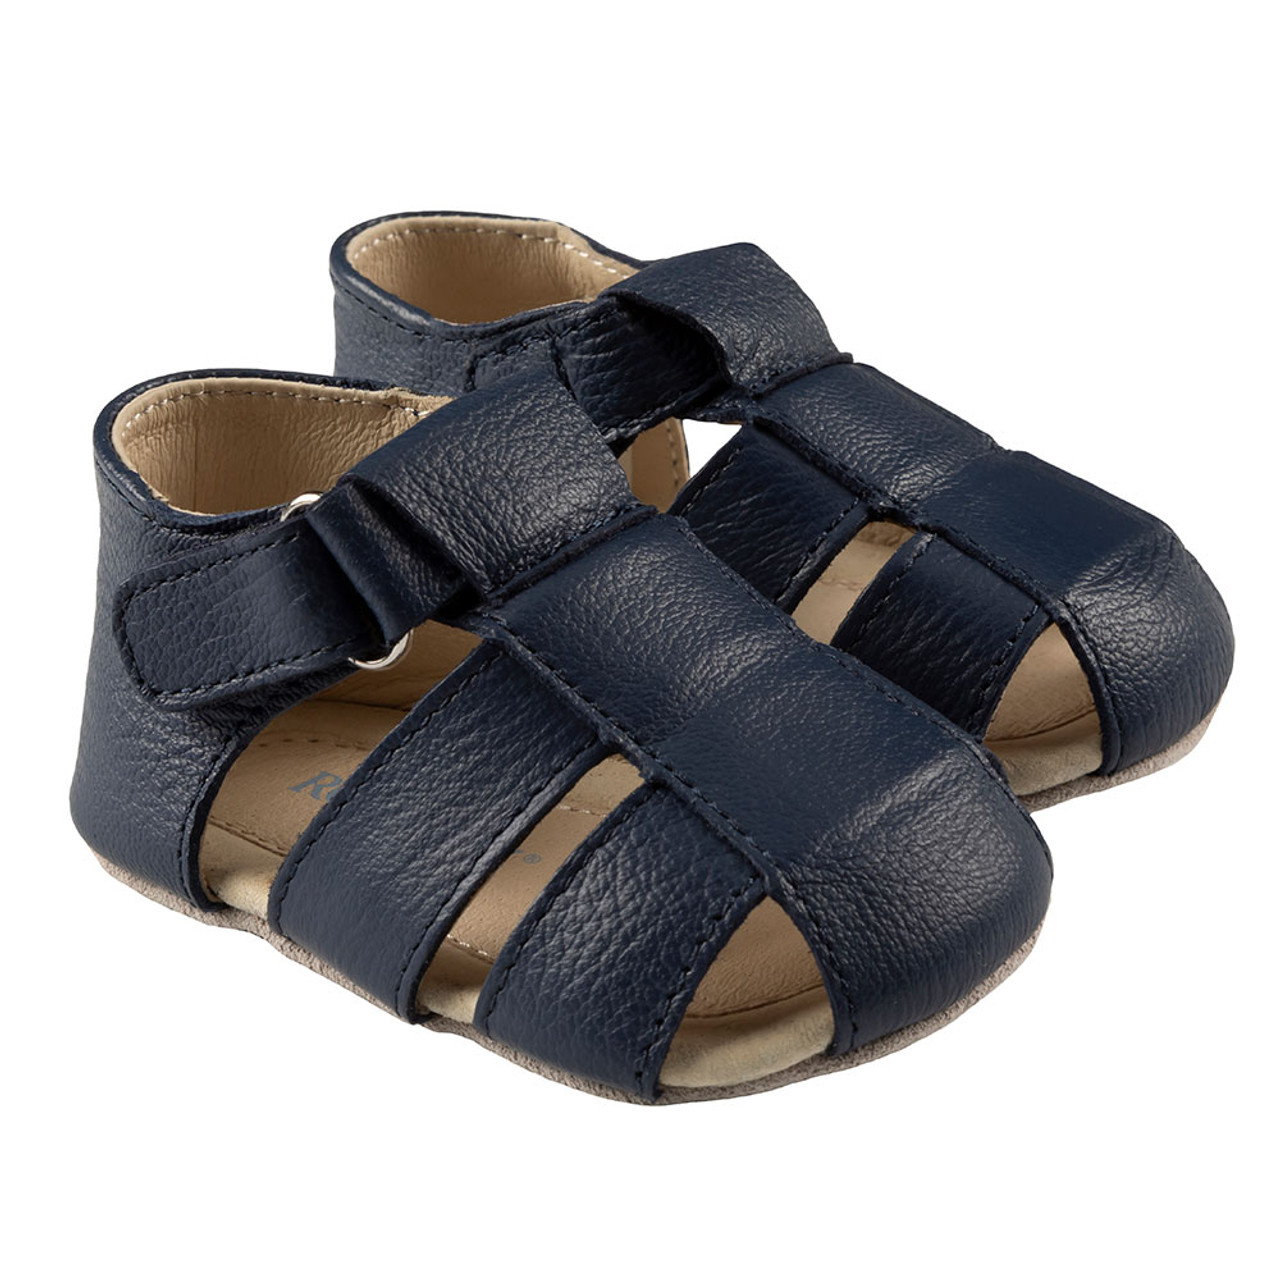 Baby Boy Brown Sandals by Next sizes 0-3 or 3-6 months